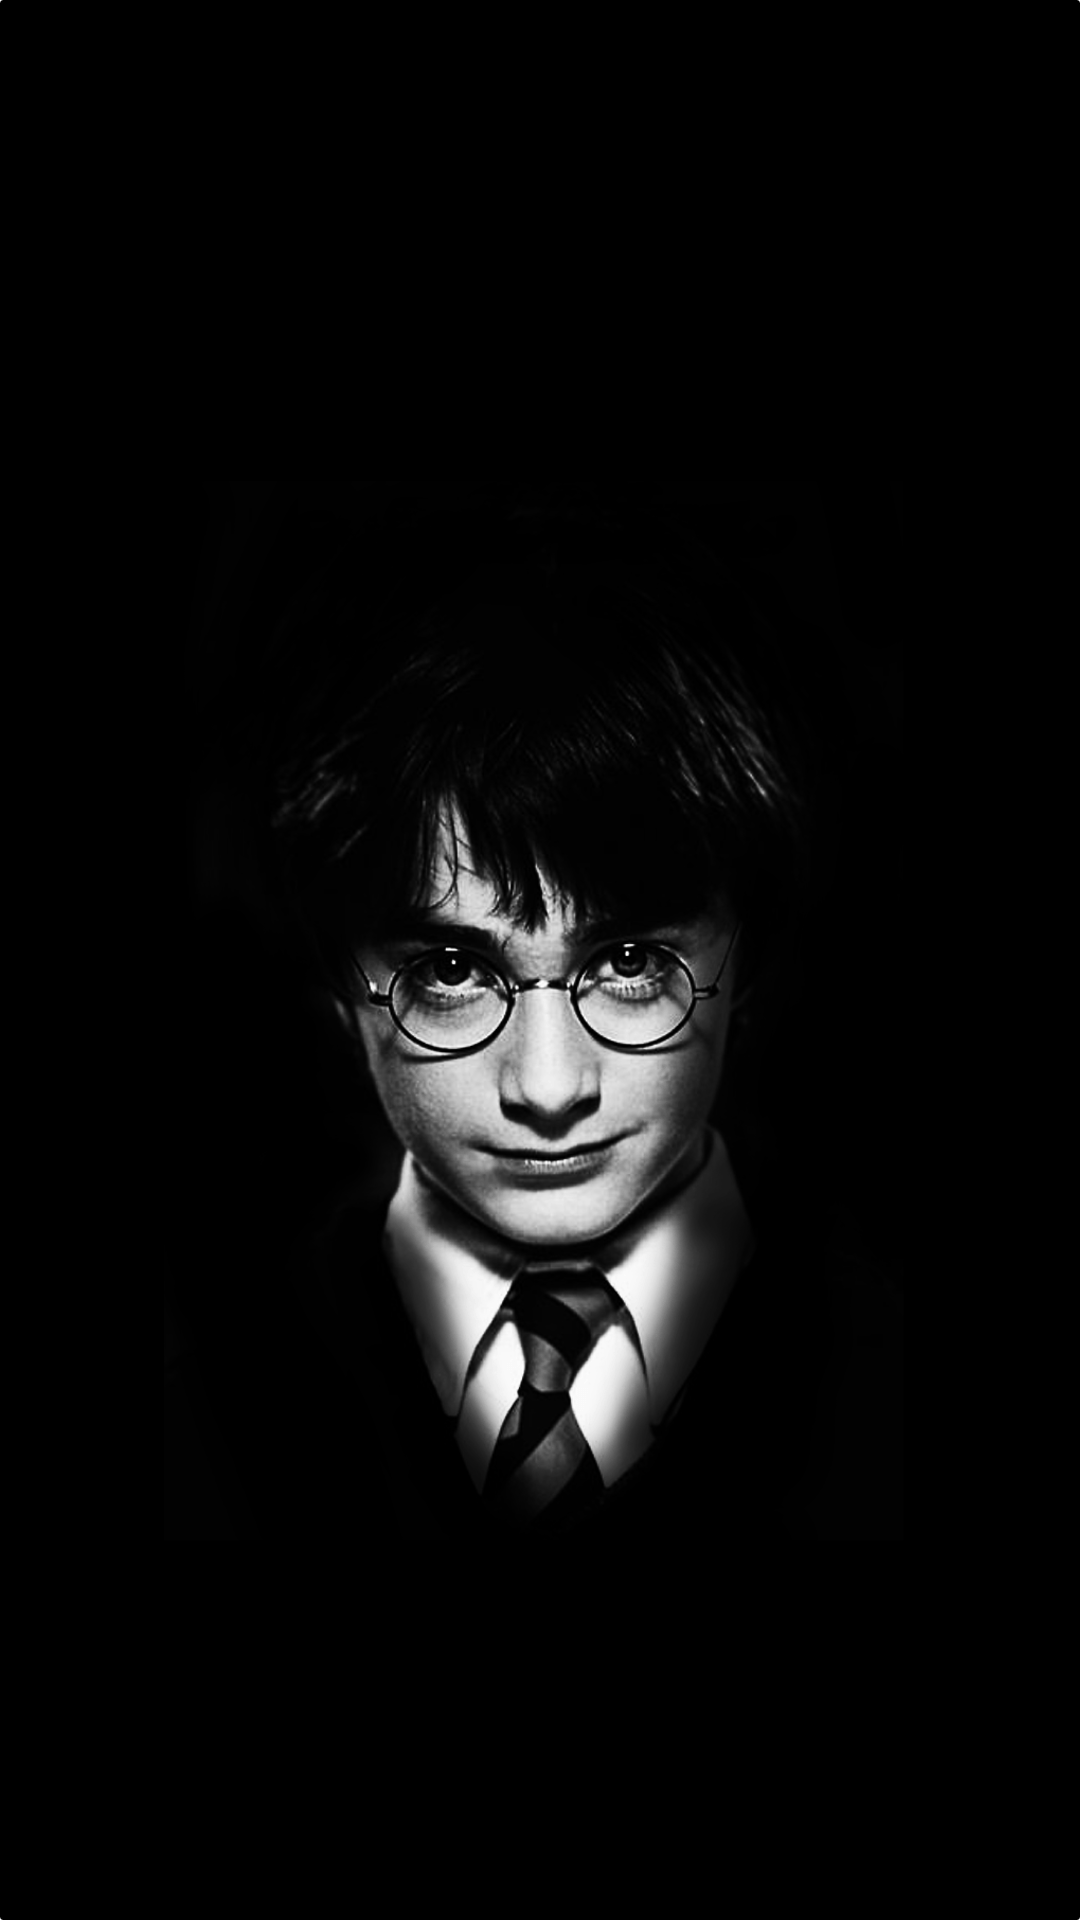 Most Inspiring Wallpaper Harry Potter Bright - 40-HD-Harry-Potter-iPhone-Wallpaper  Best Photo Reference_604444.png